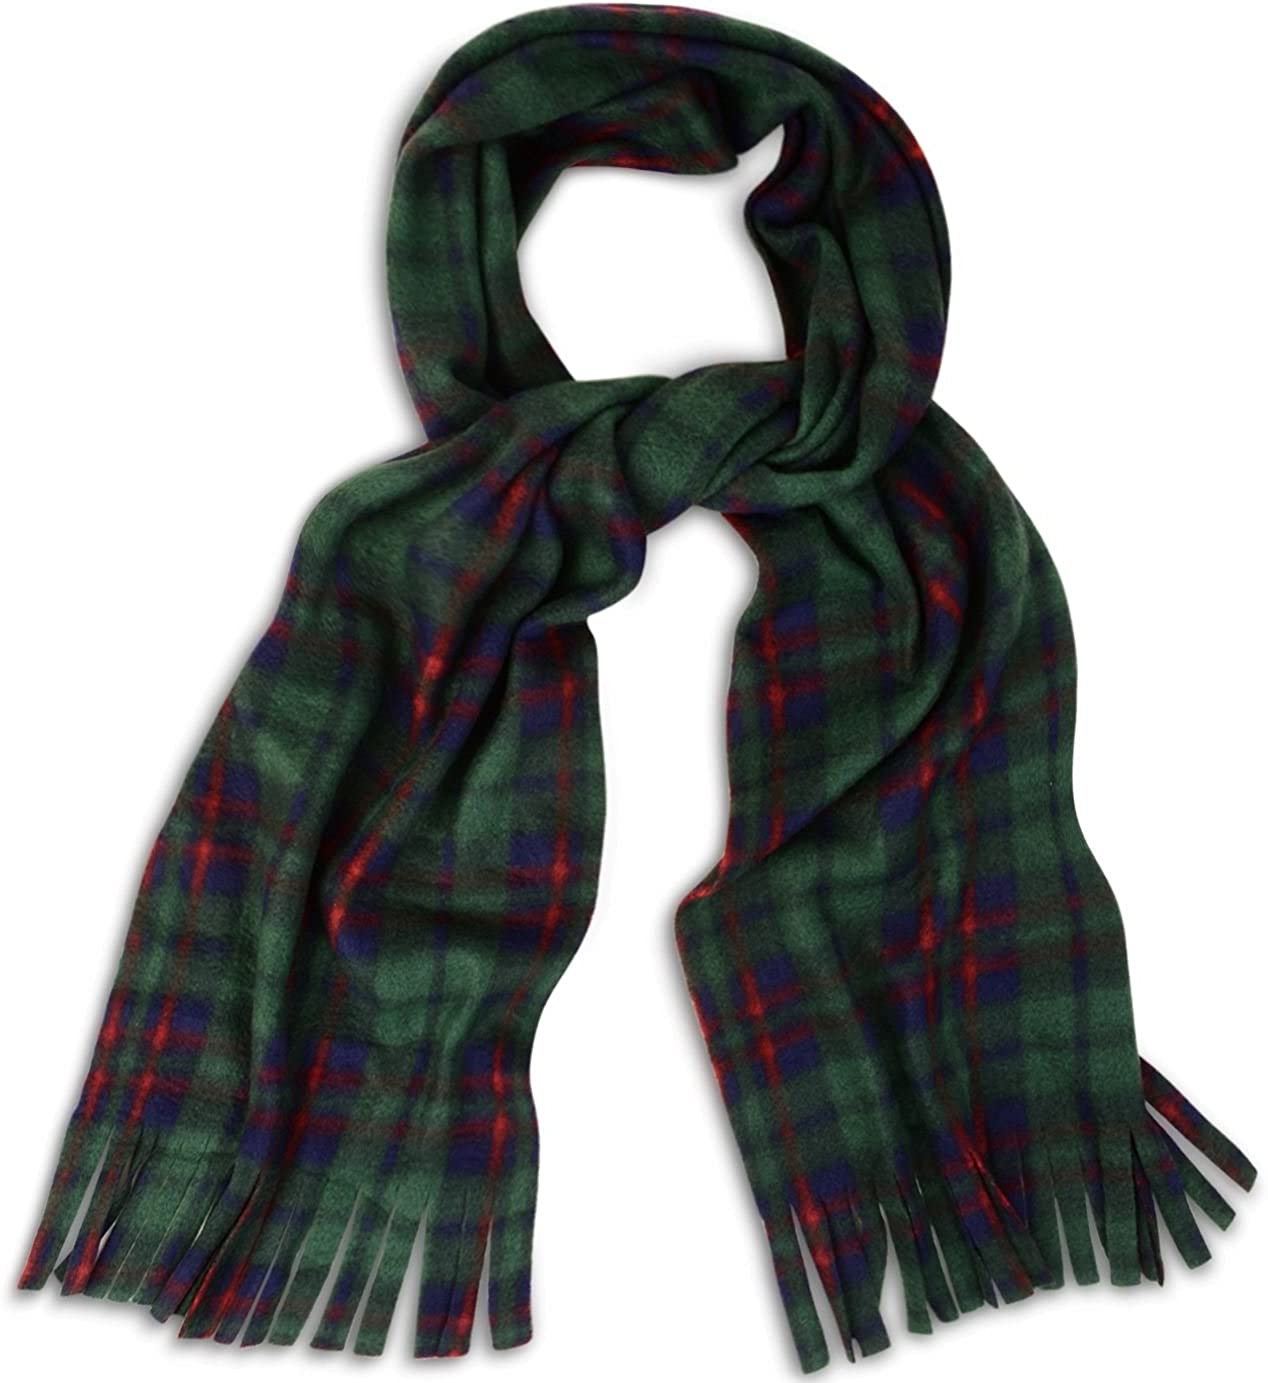 Super Soft and Cosy Tartan Check Fleece Winter Scarf Scarves with Tassles Warm